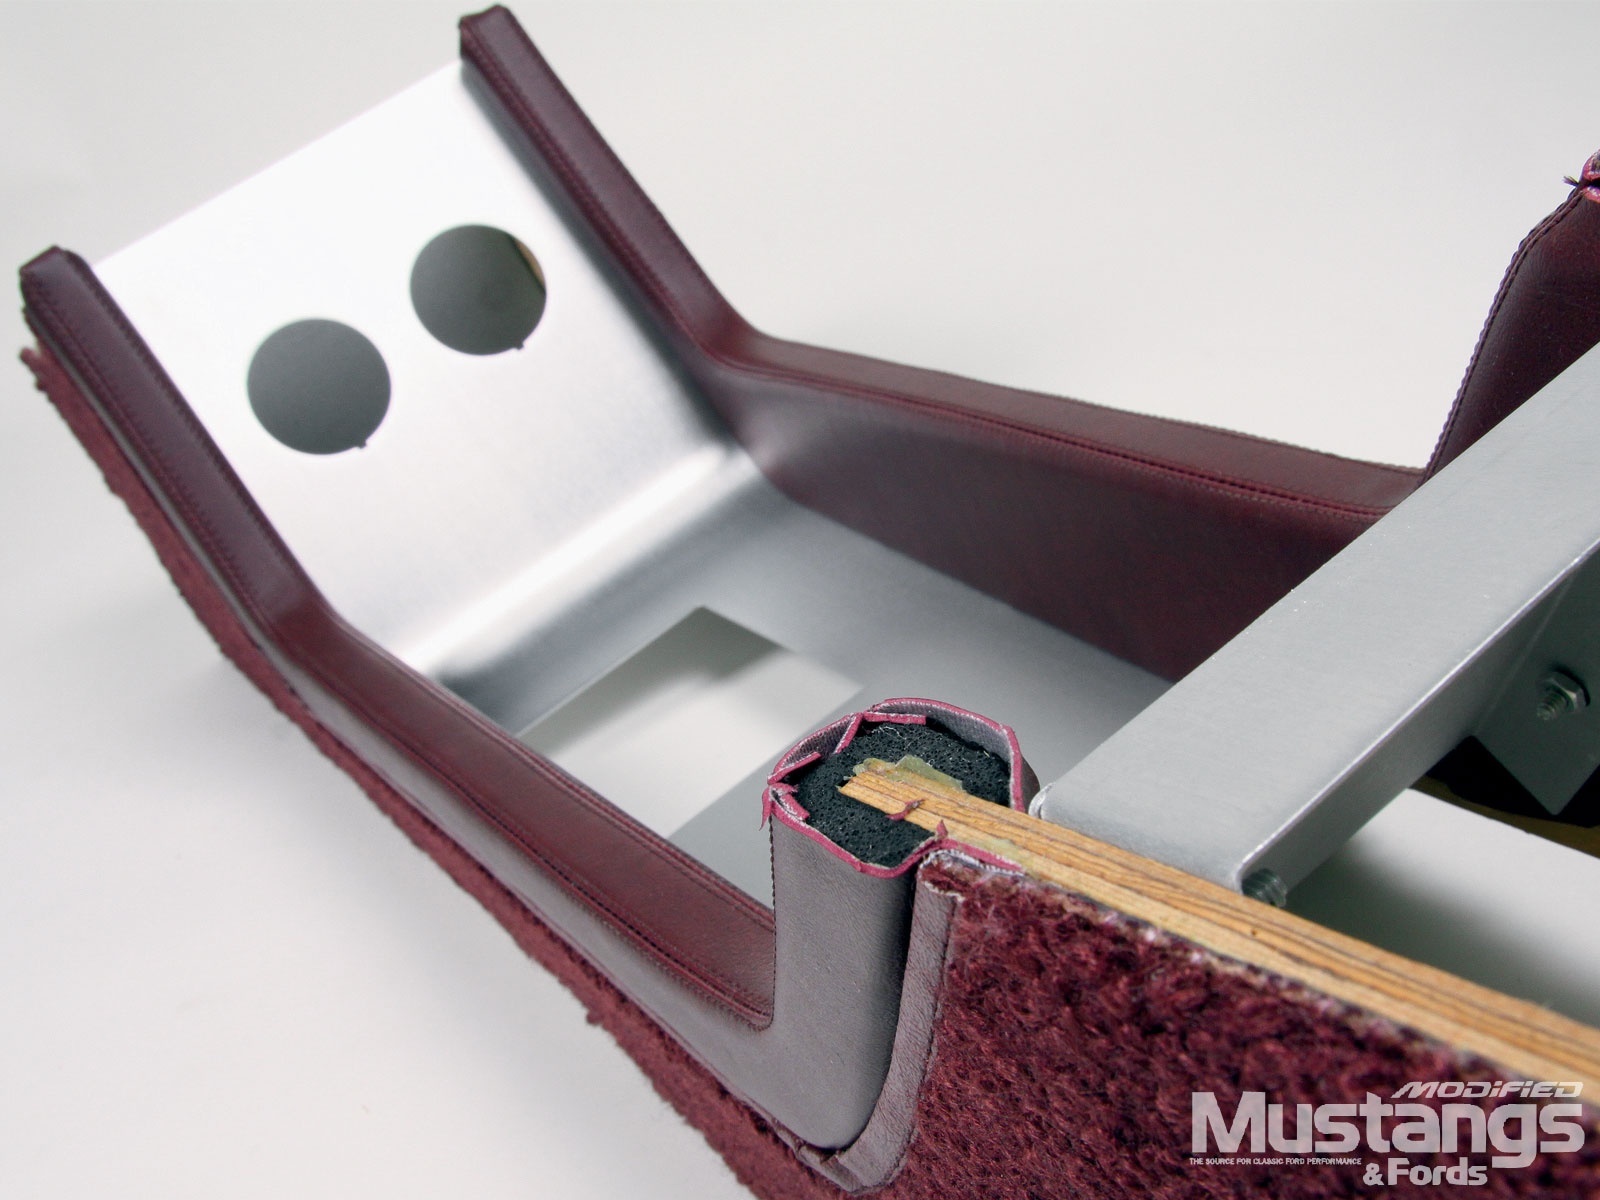 Mustang Console Skinned In Vinyl Or Leather